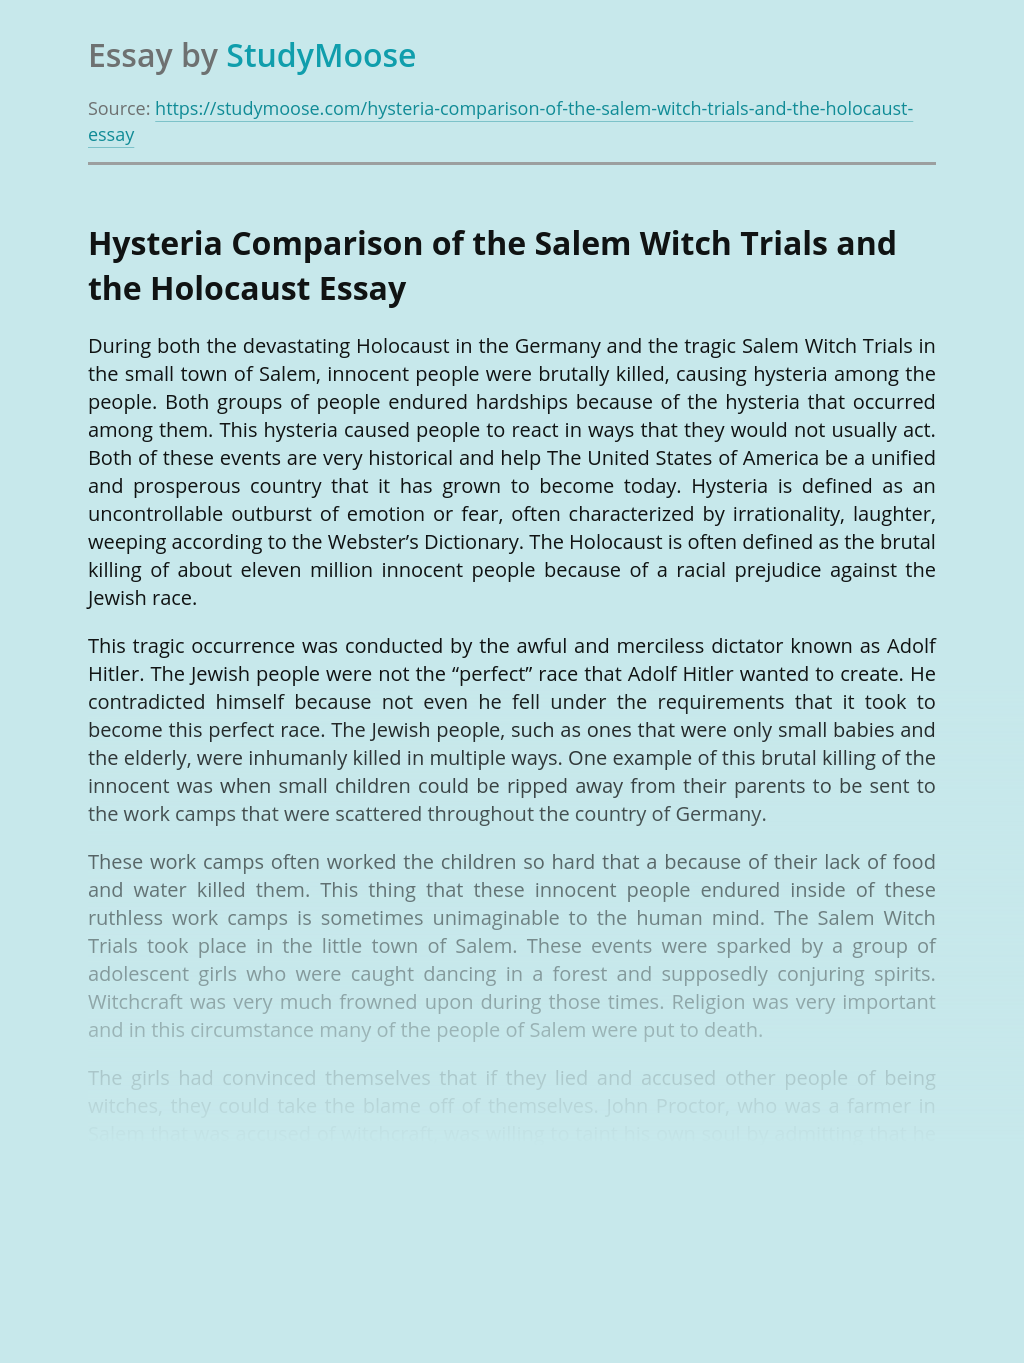 Hysteria Comparison of the Salem Witch Trials and the Holocaust